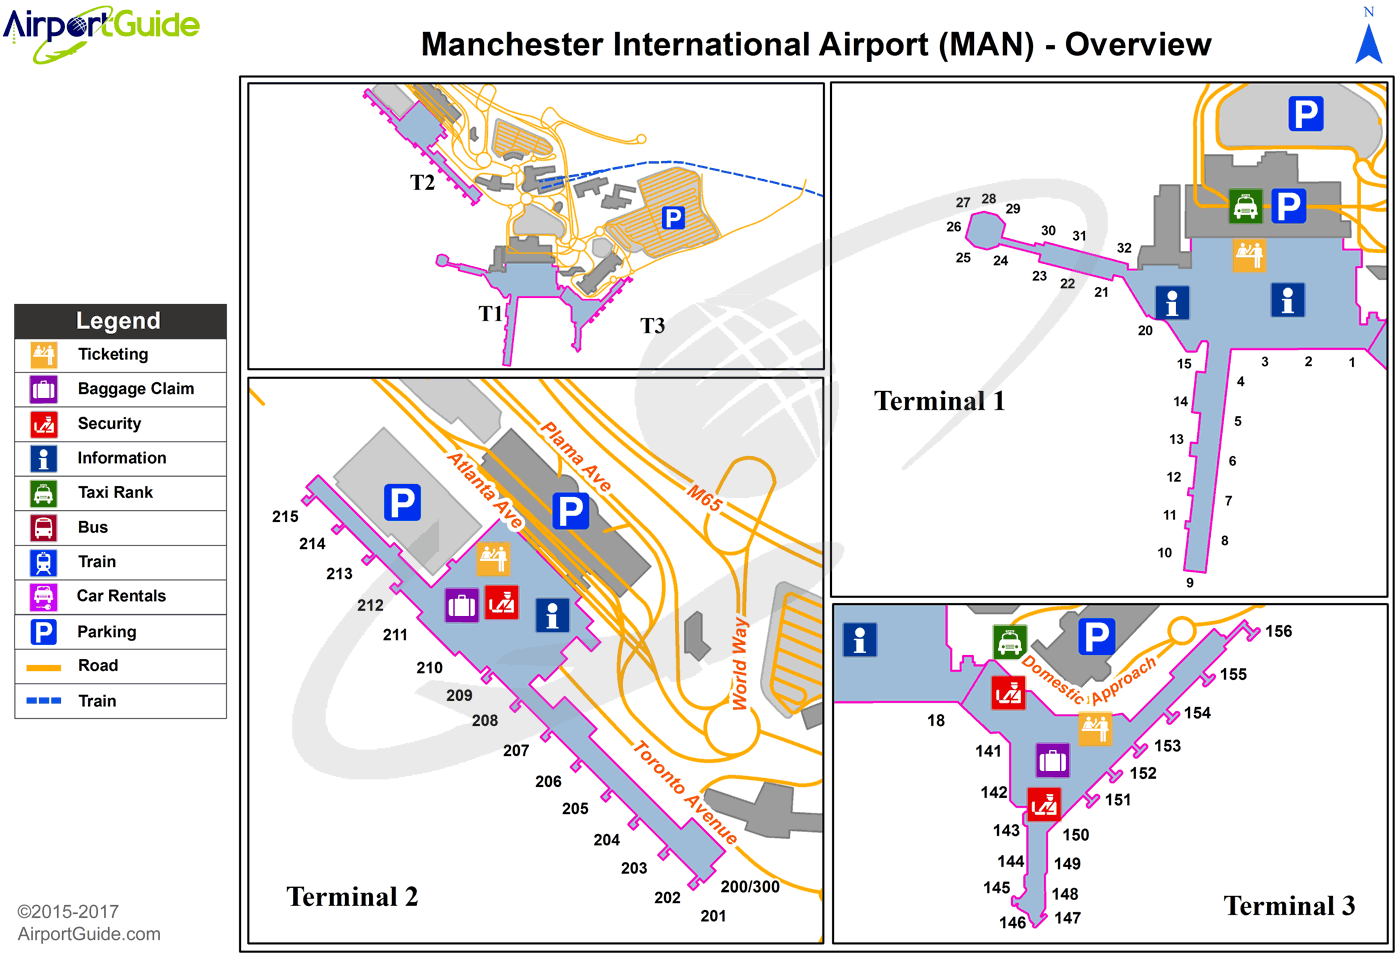 Manchester - Bicester Airfield (MAN) Airport Terminal Map - Overview